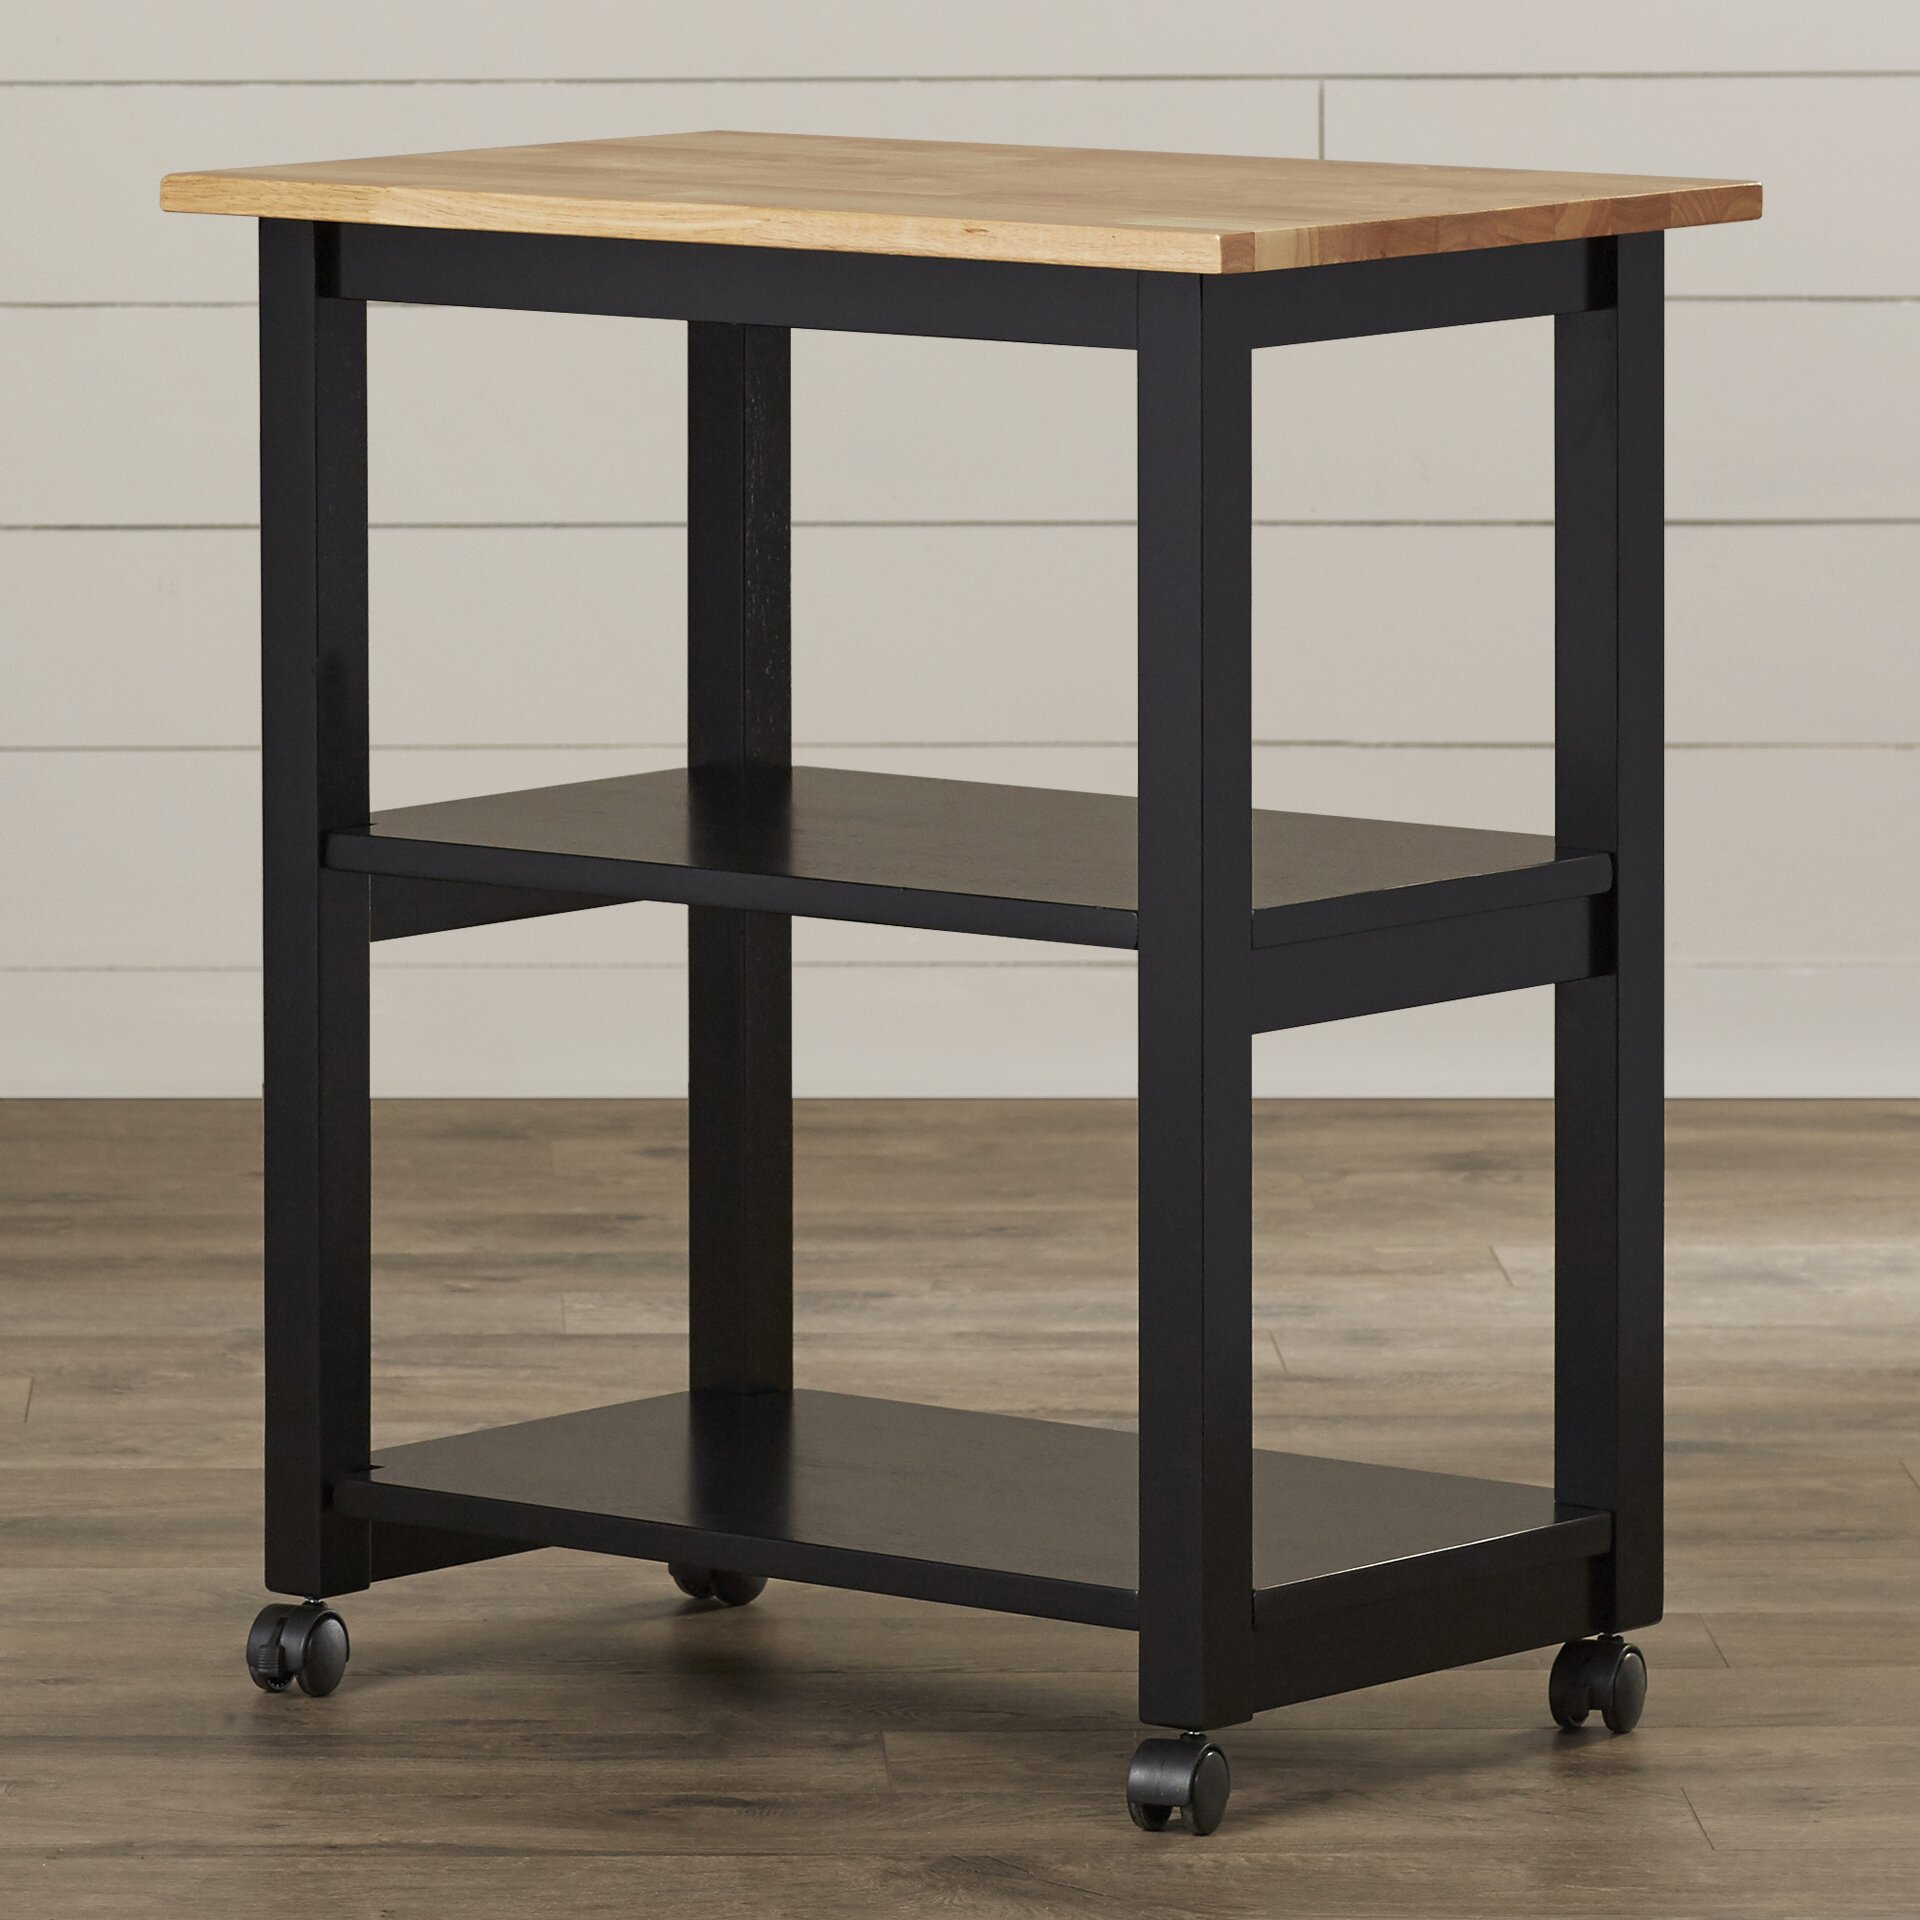 Kitchen Cart Butcher Block – Home design and Decorating